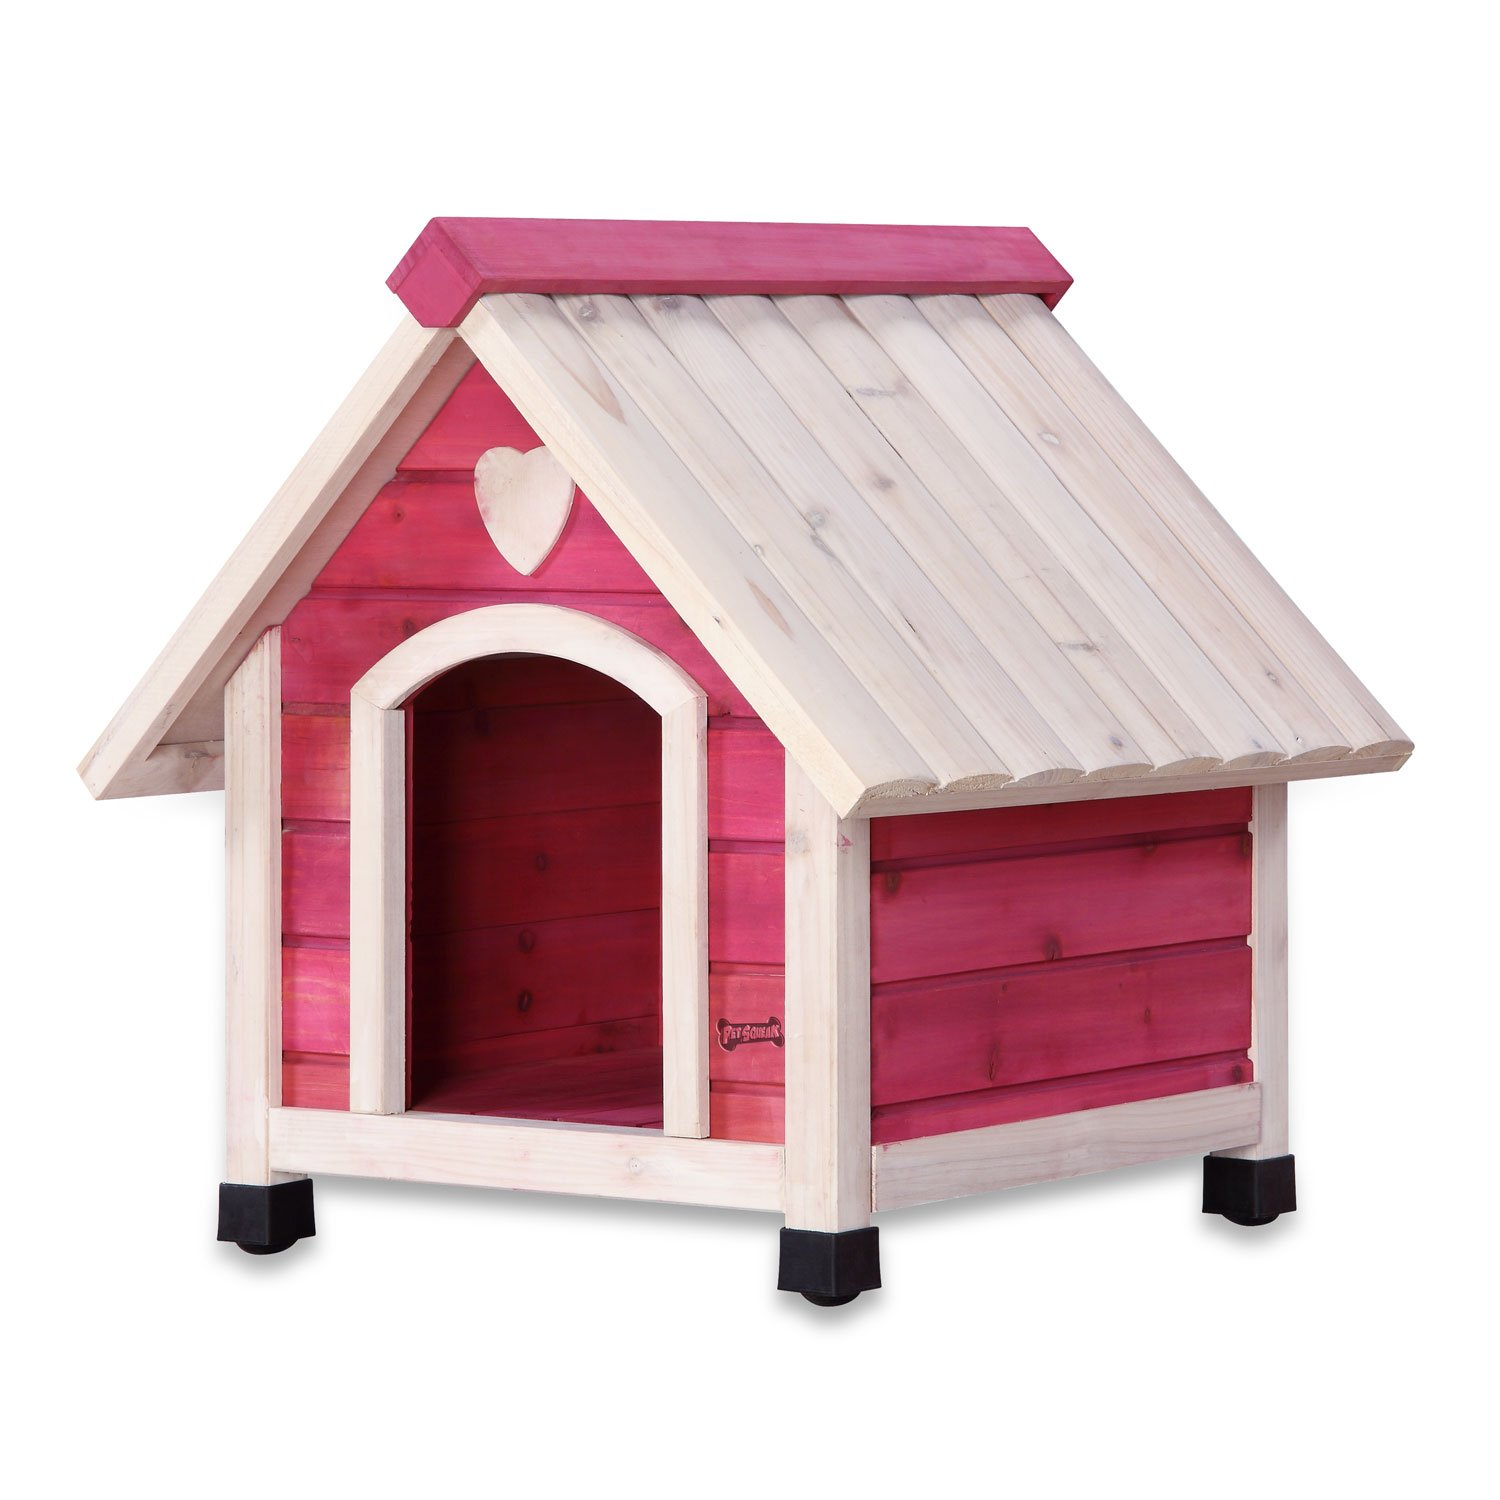 pet supplies  pet squeak princess pad dog house xsmall pink  - pet supplies  pet squeak princess pad dog house xsmall pink  amazoncom